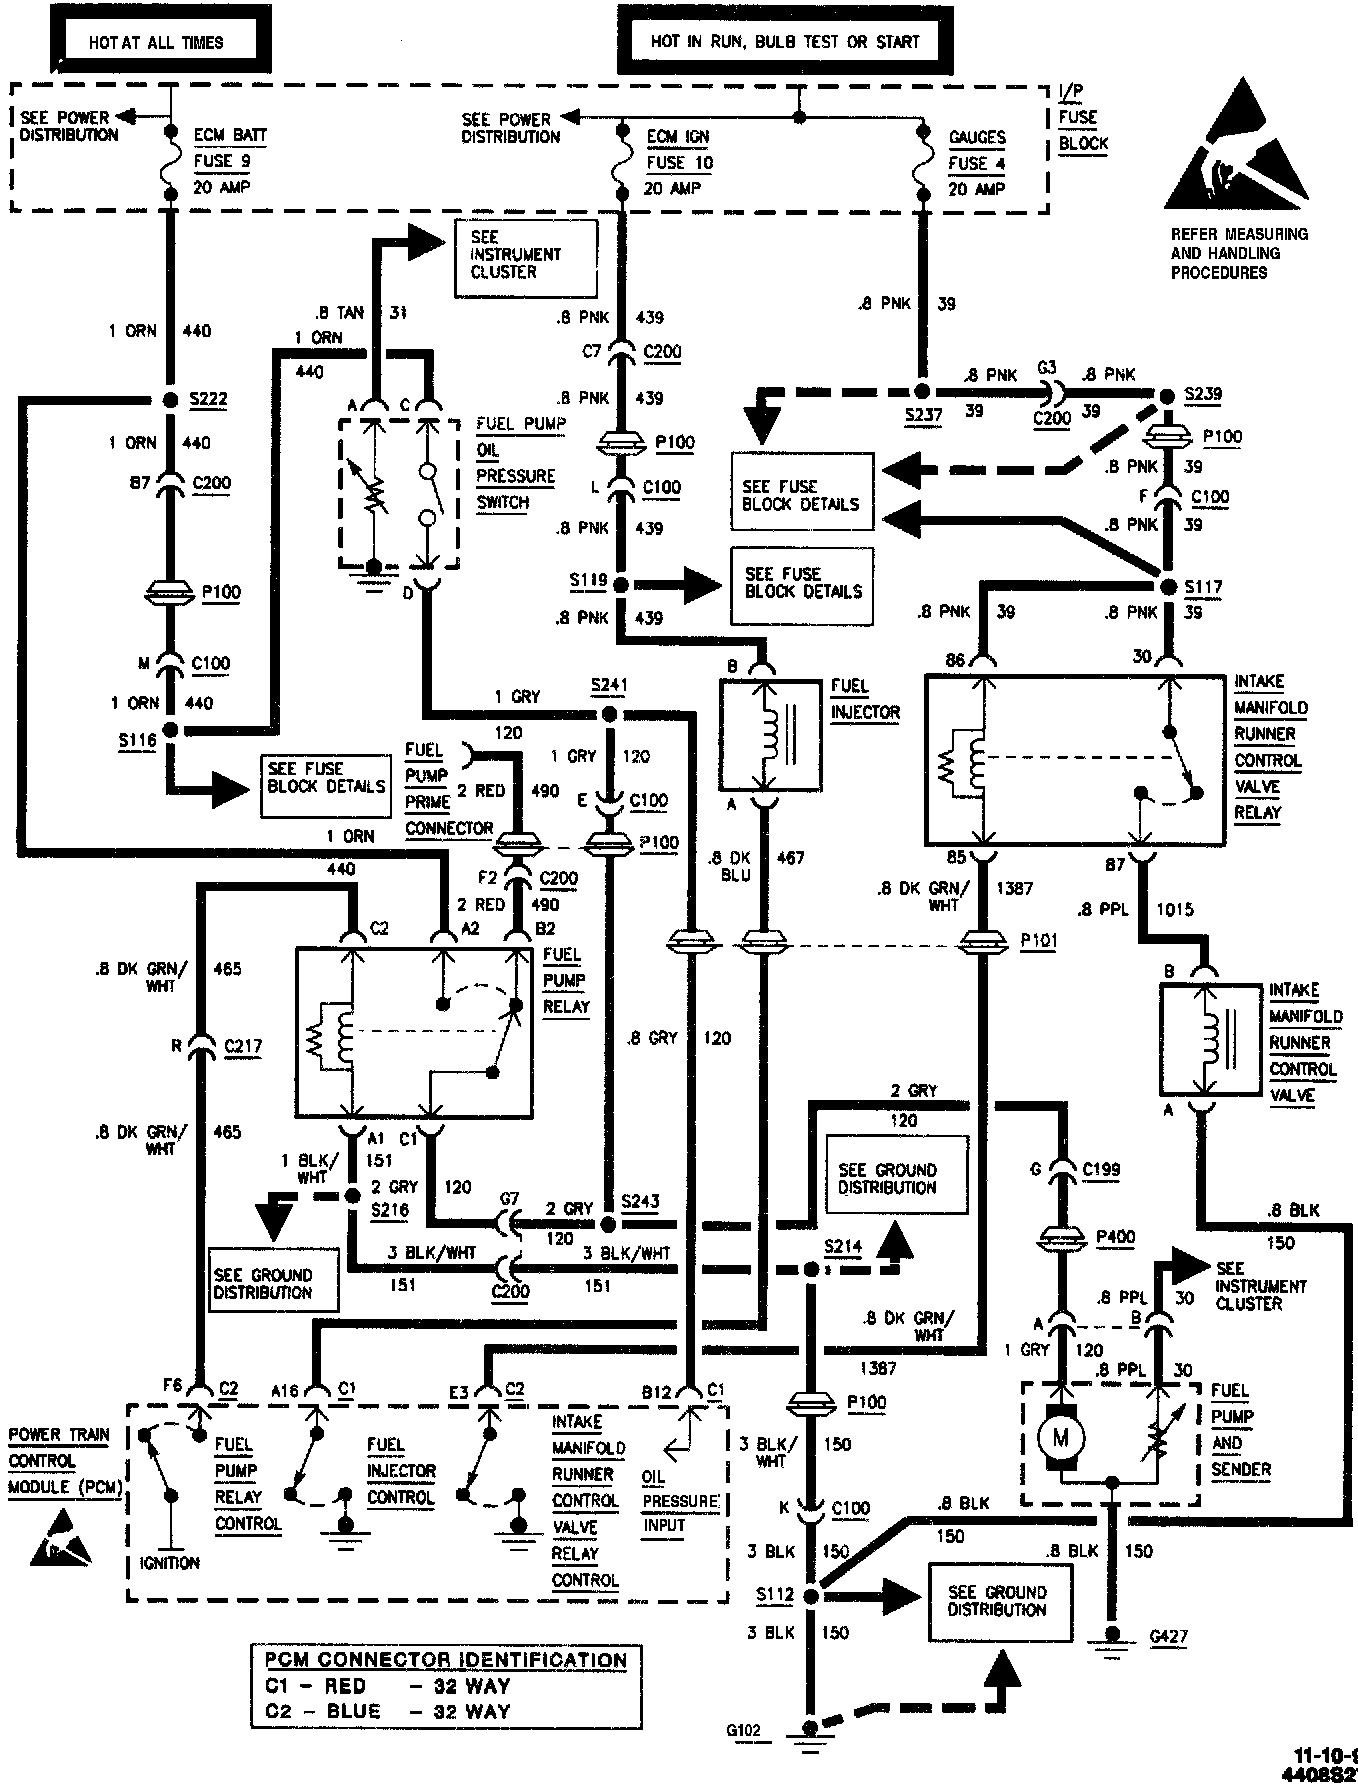 2001 S10 Tail Light Wiring Diagram in 2021 | Chevy s10, Diagram design,  Diagram | Chevrolet S10 Tail Light Wiring Diagram |  | Pinterest